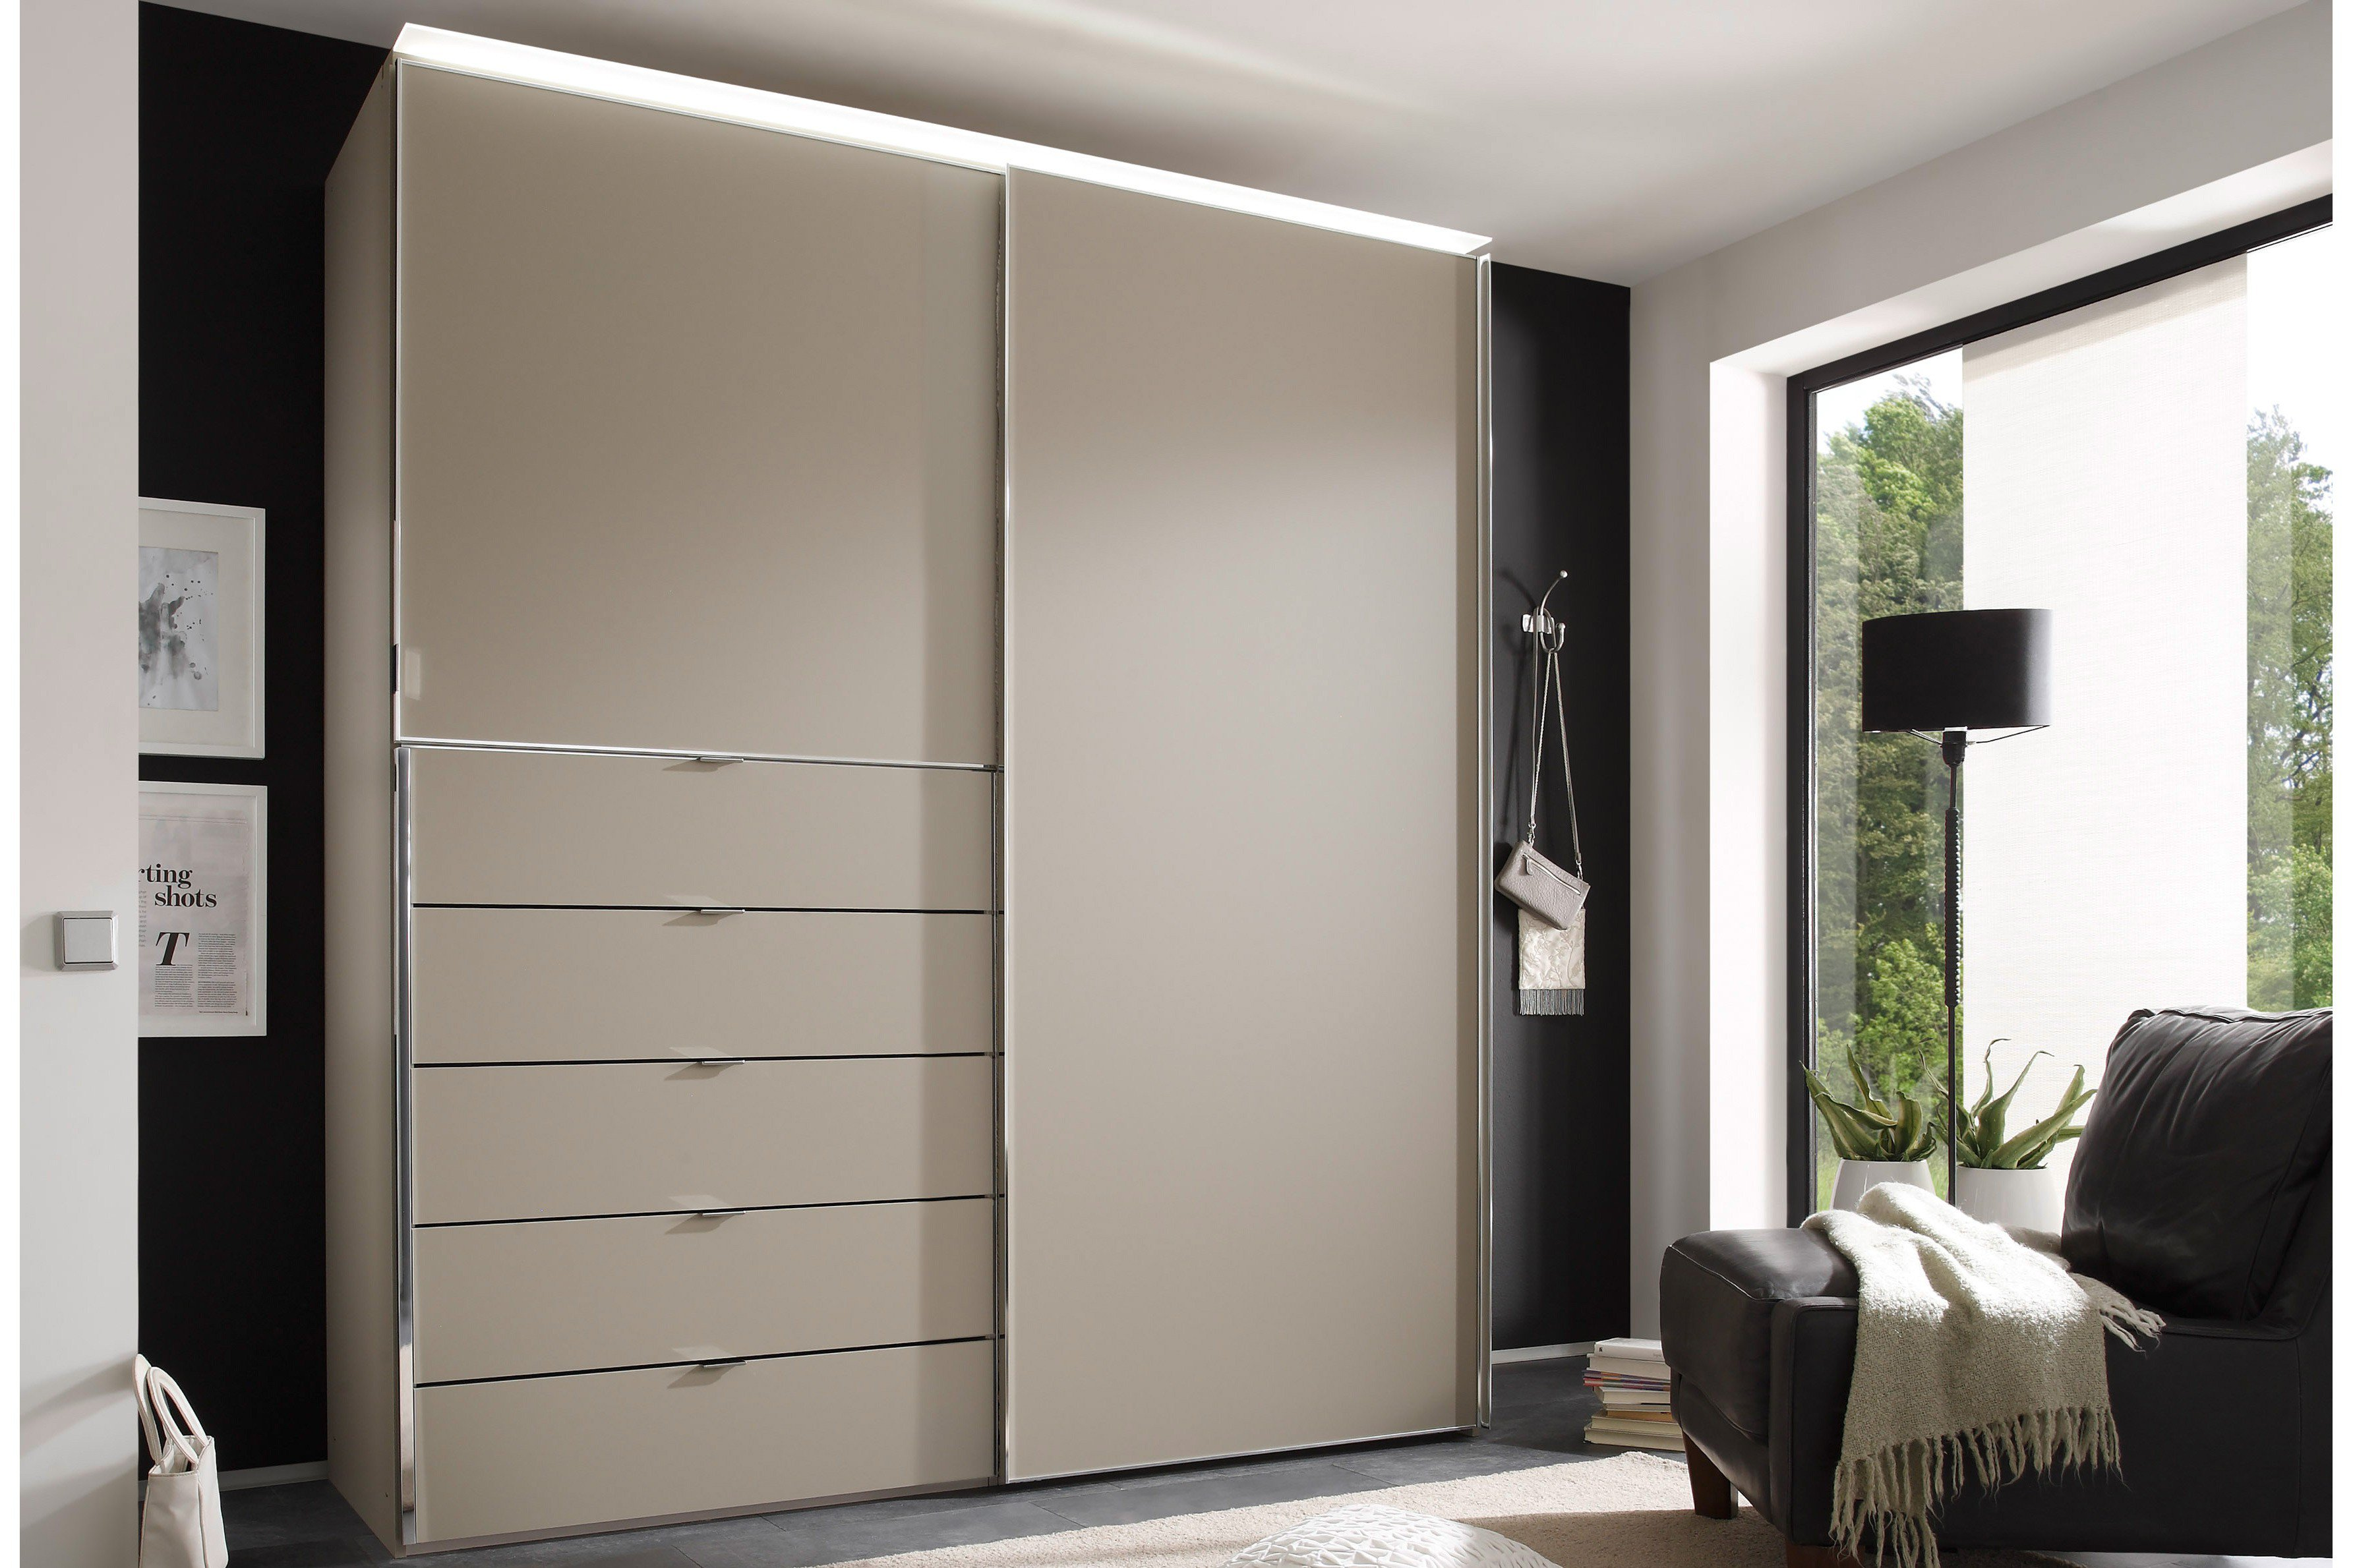 staud media light schrank umbra m bel letz ihr online shop. Black Bedroom Furniture Sets. Home Design Ideas